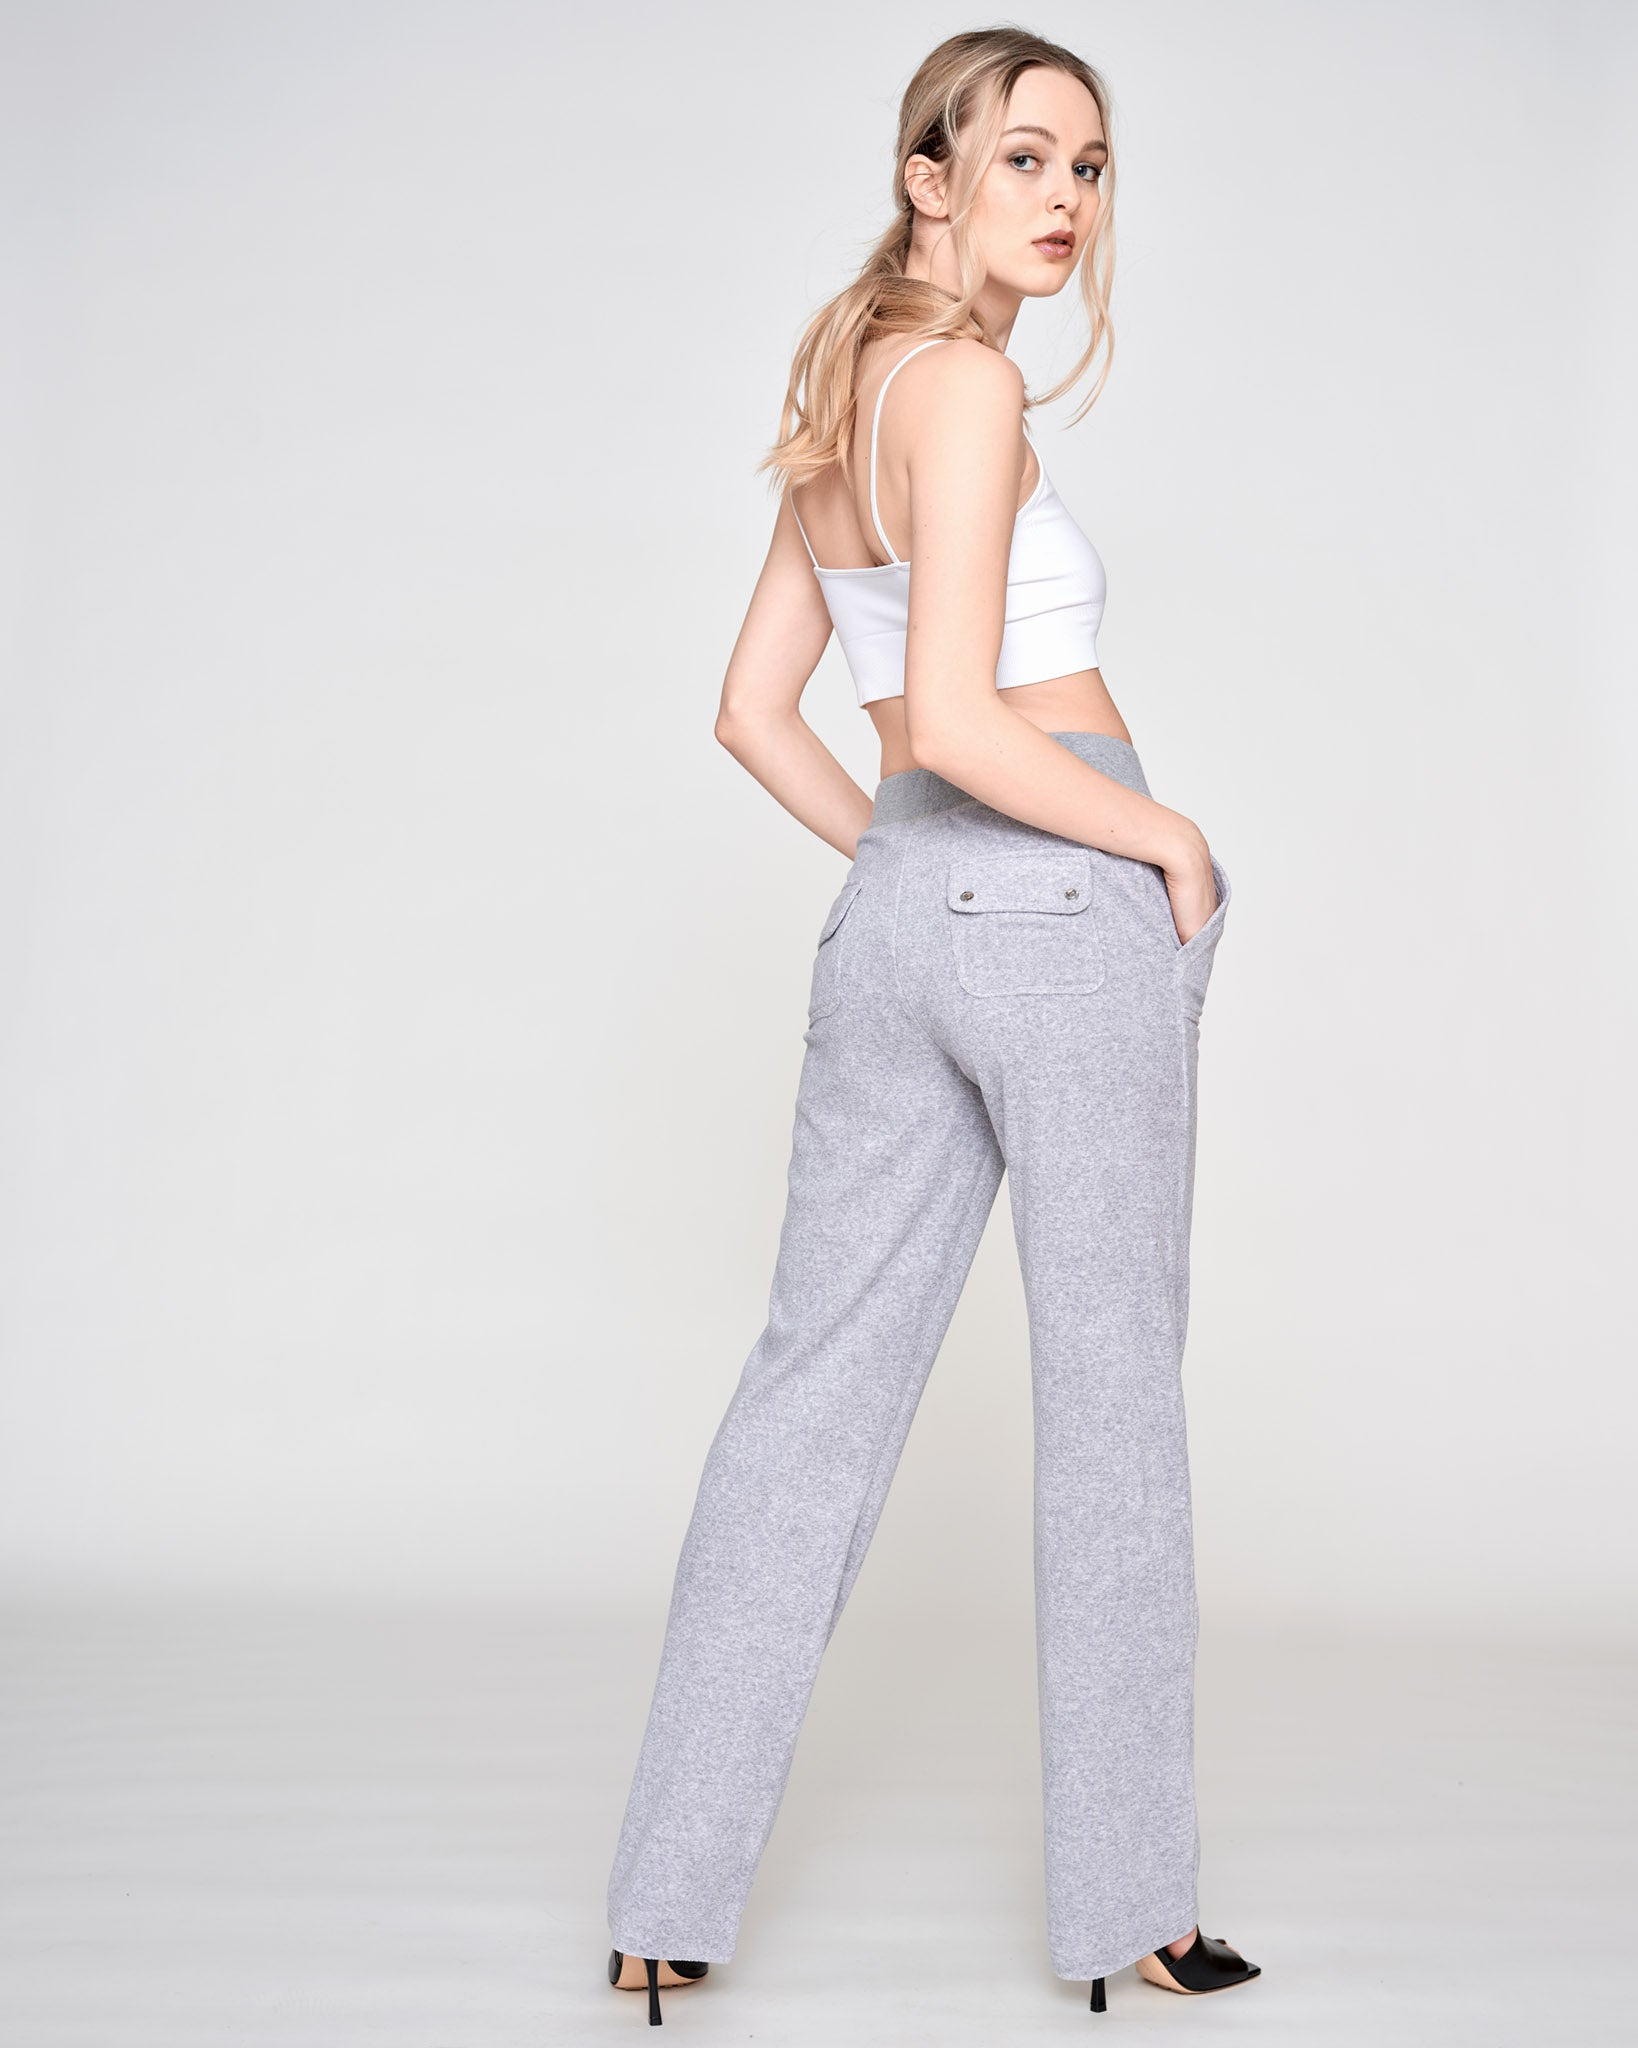 Del Ray Terry Towelling Pant Light Grey Marl - Juicy Couture Scandinavia